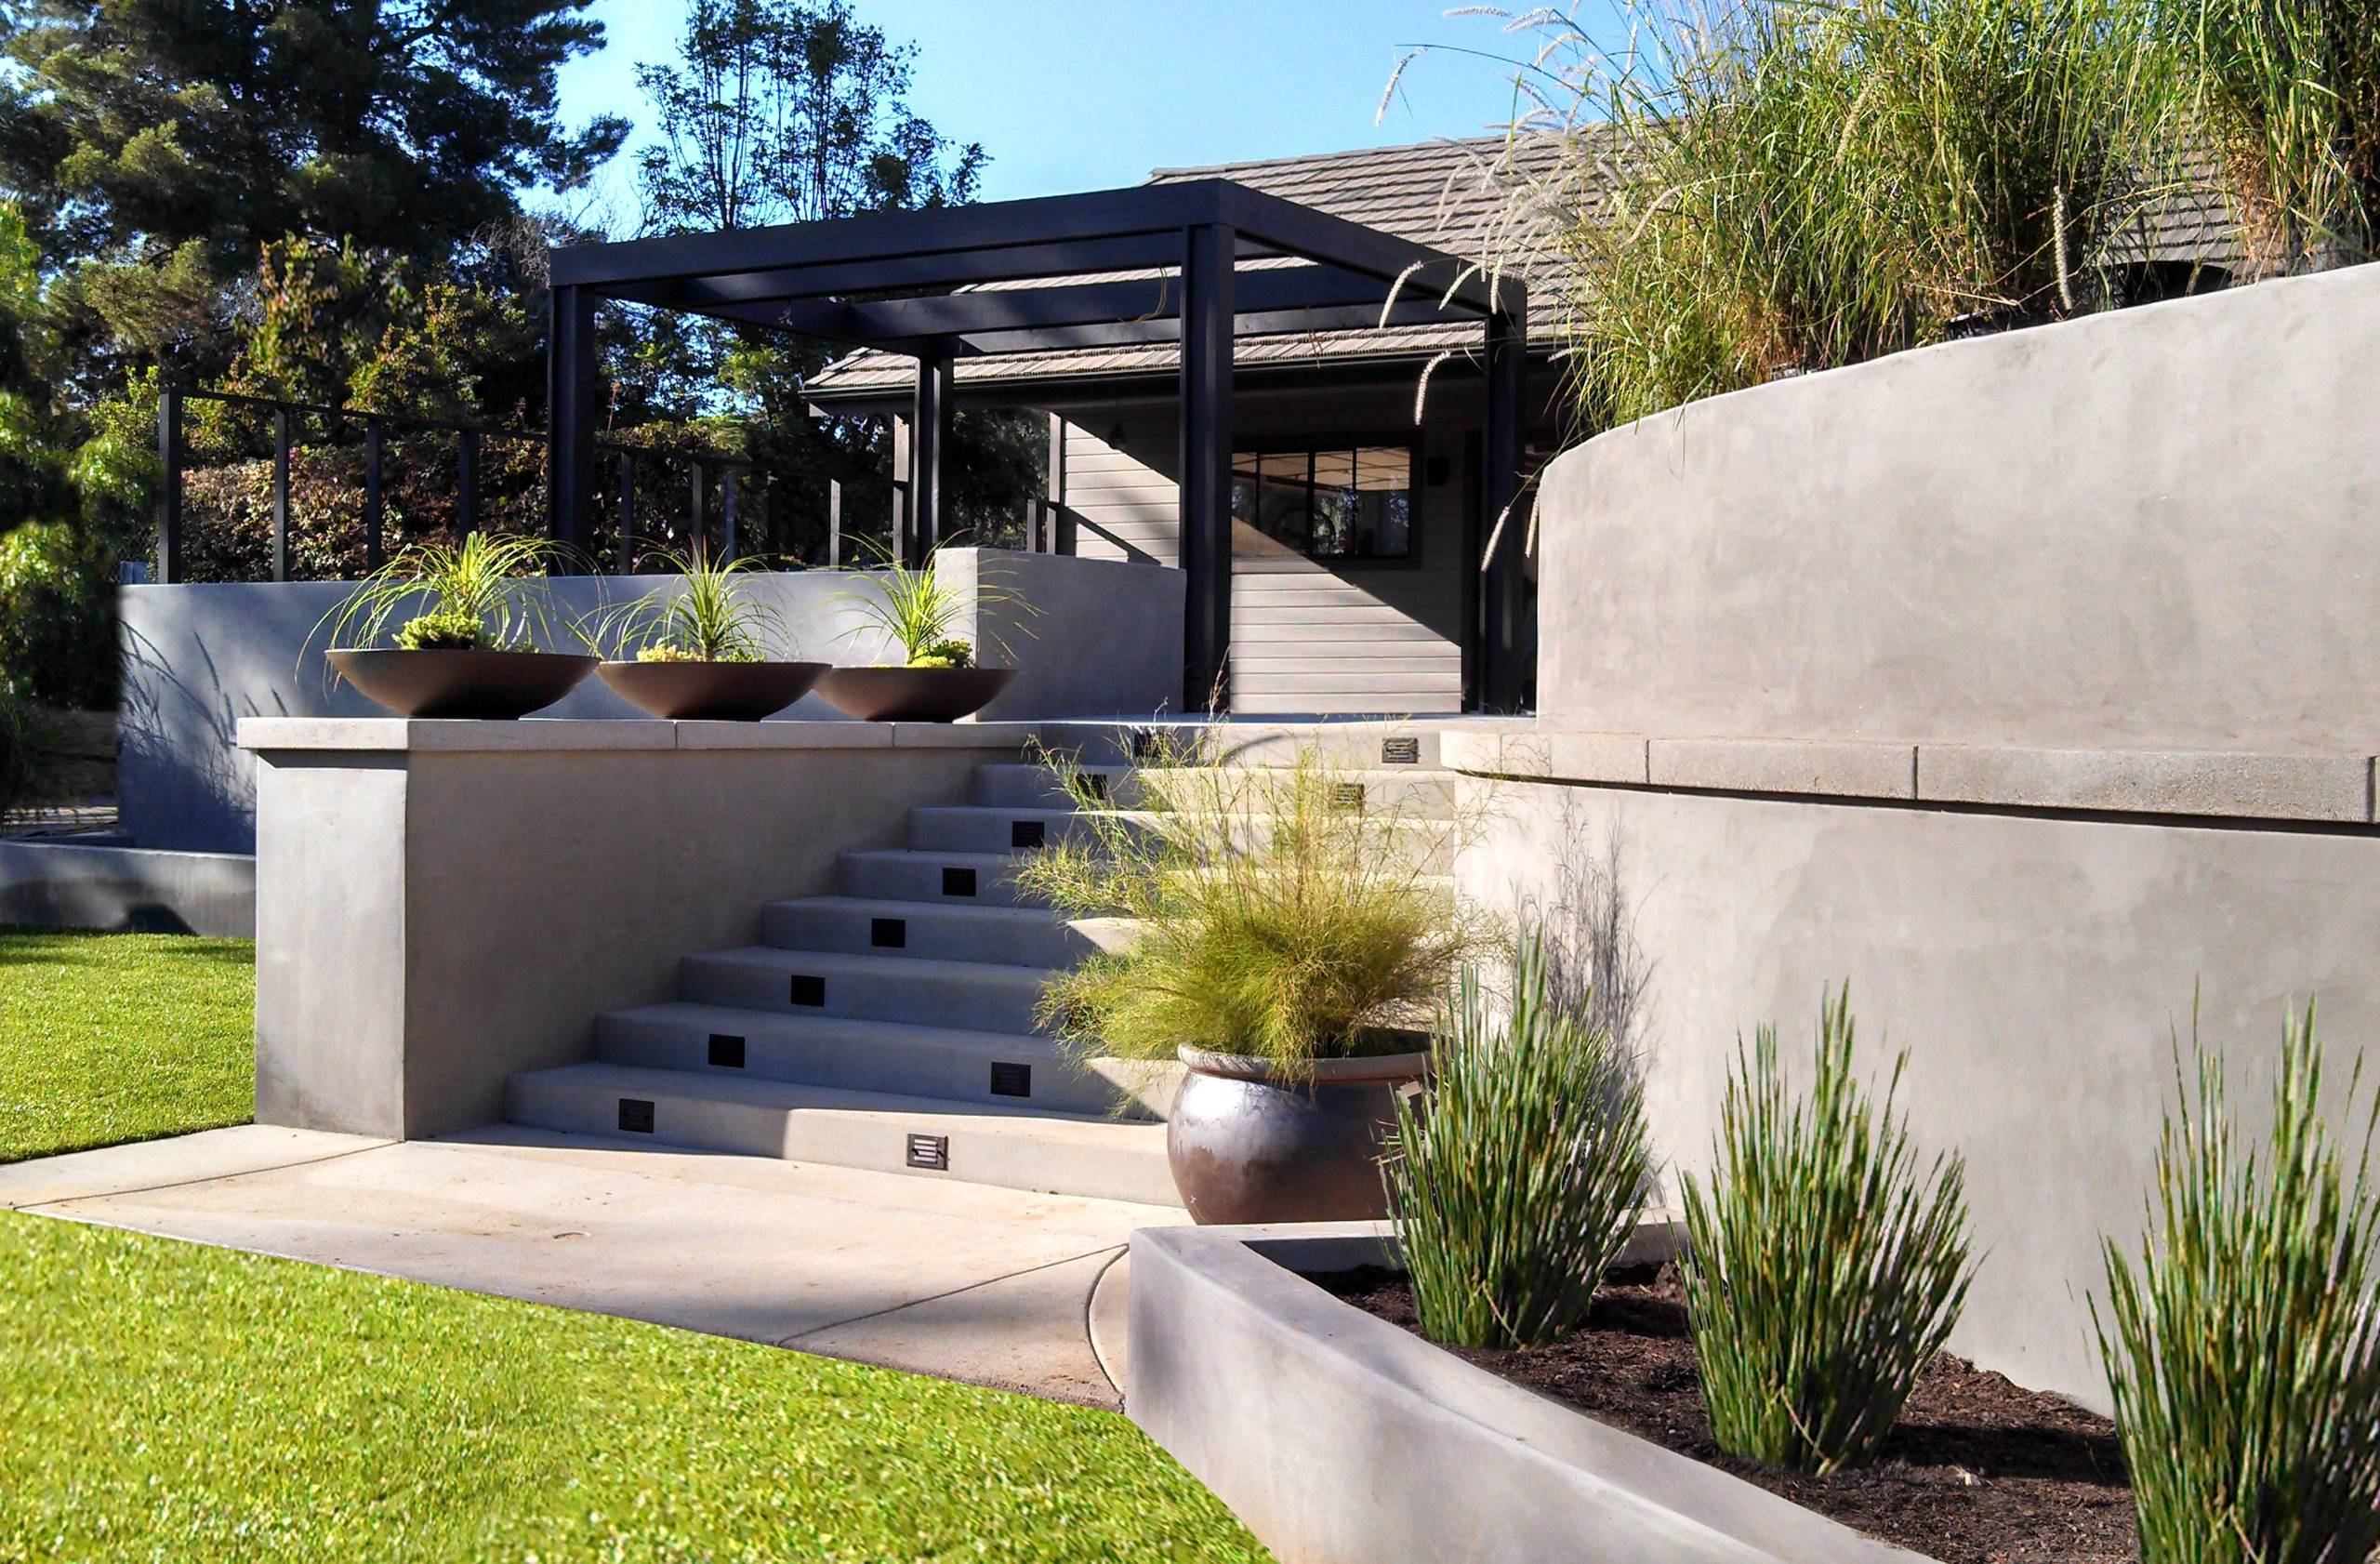 Concrete retaining walls and wood trellis - Contemporary - Landscape - San  Diego - by Springfield Design | Houzz